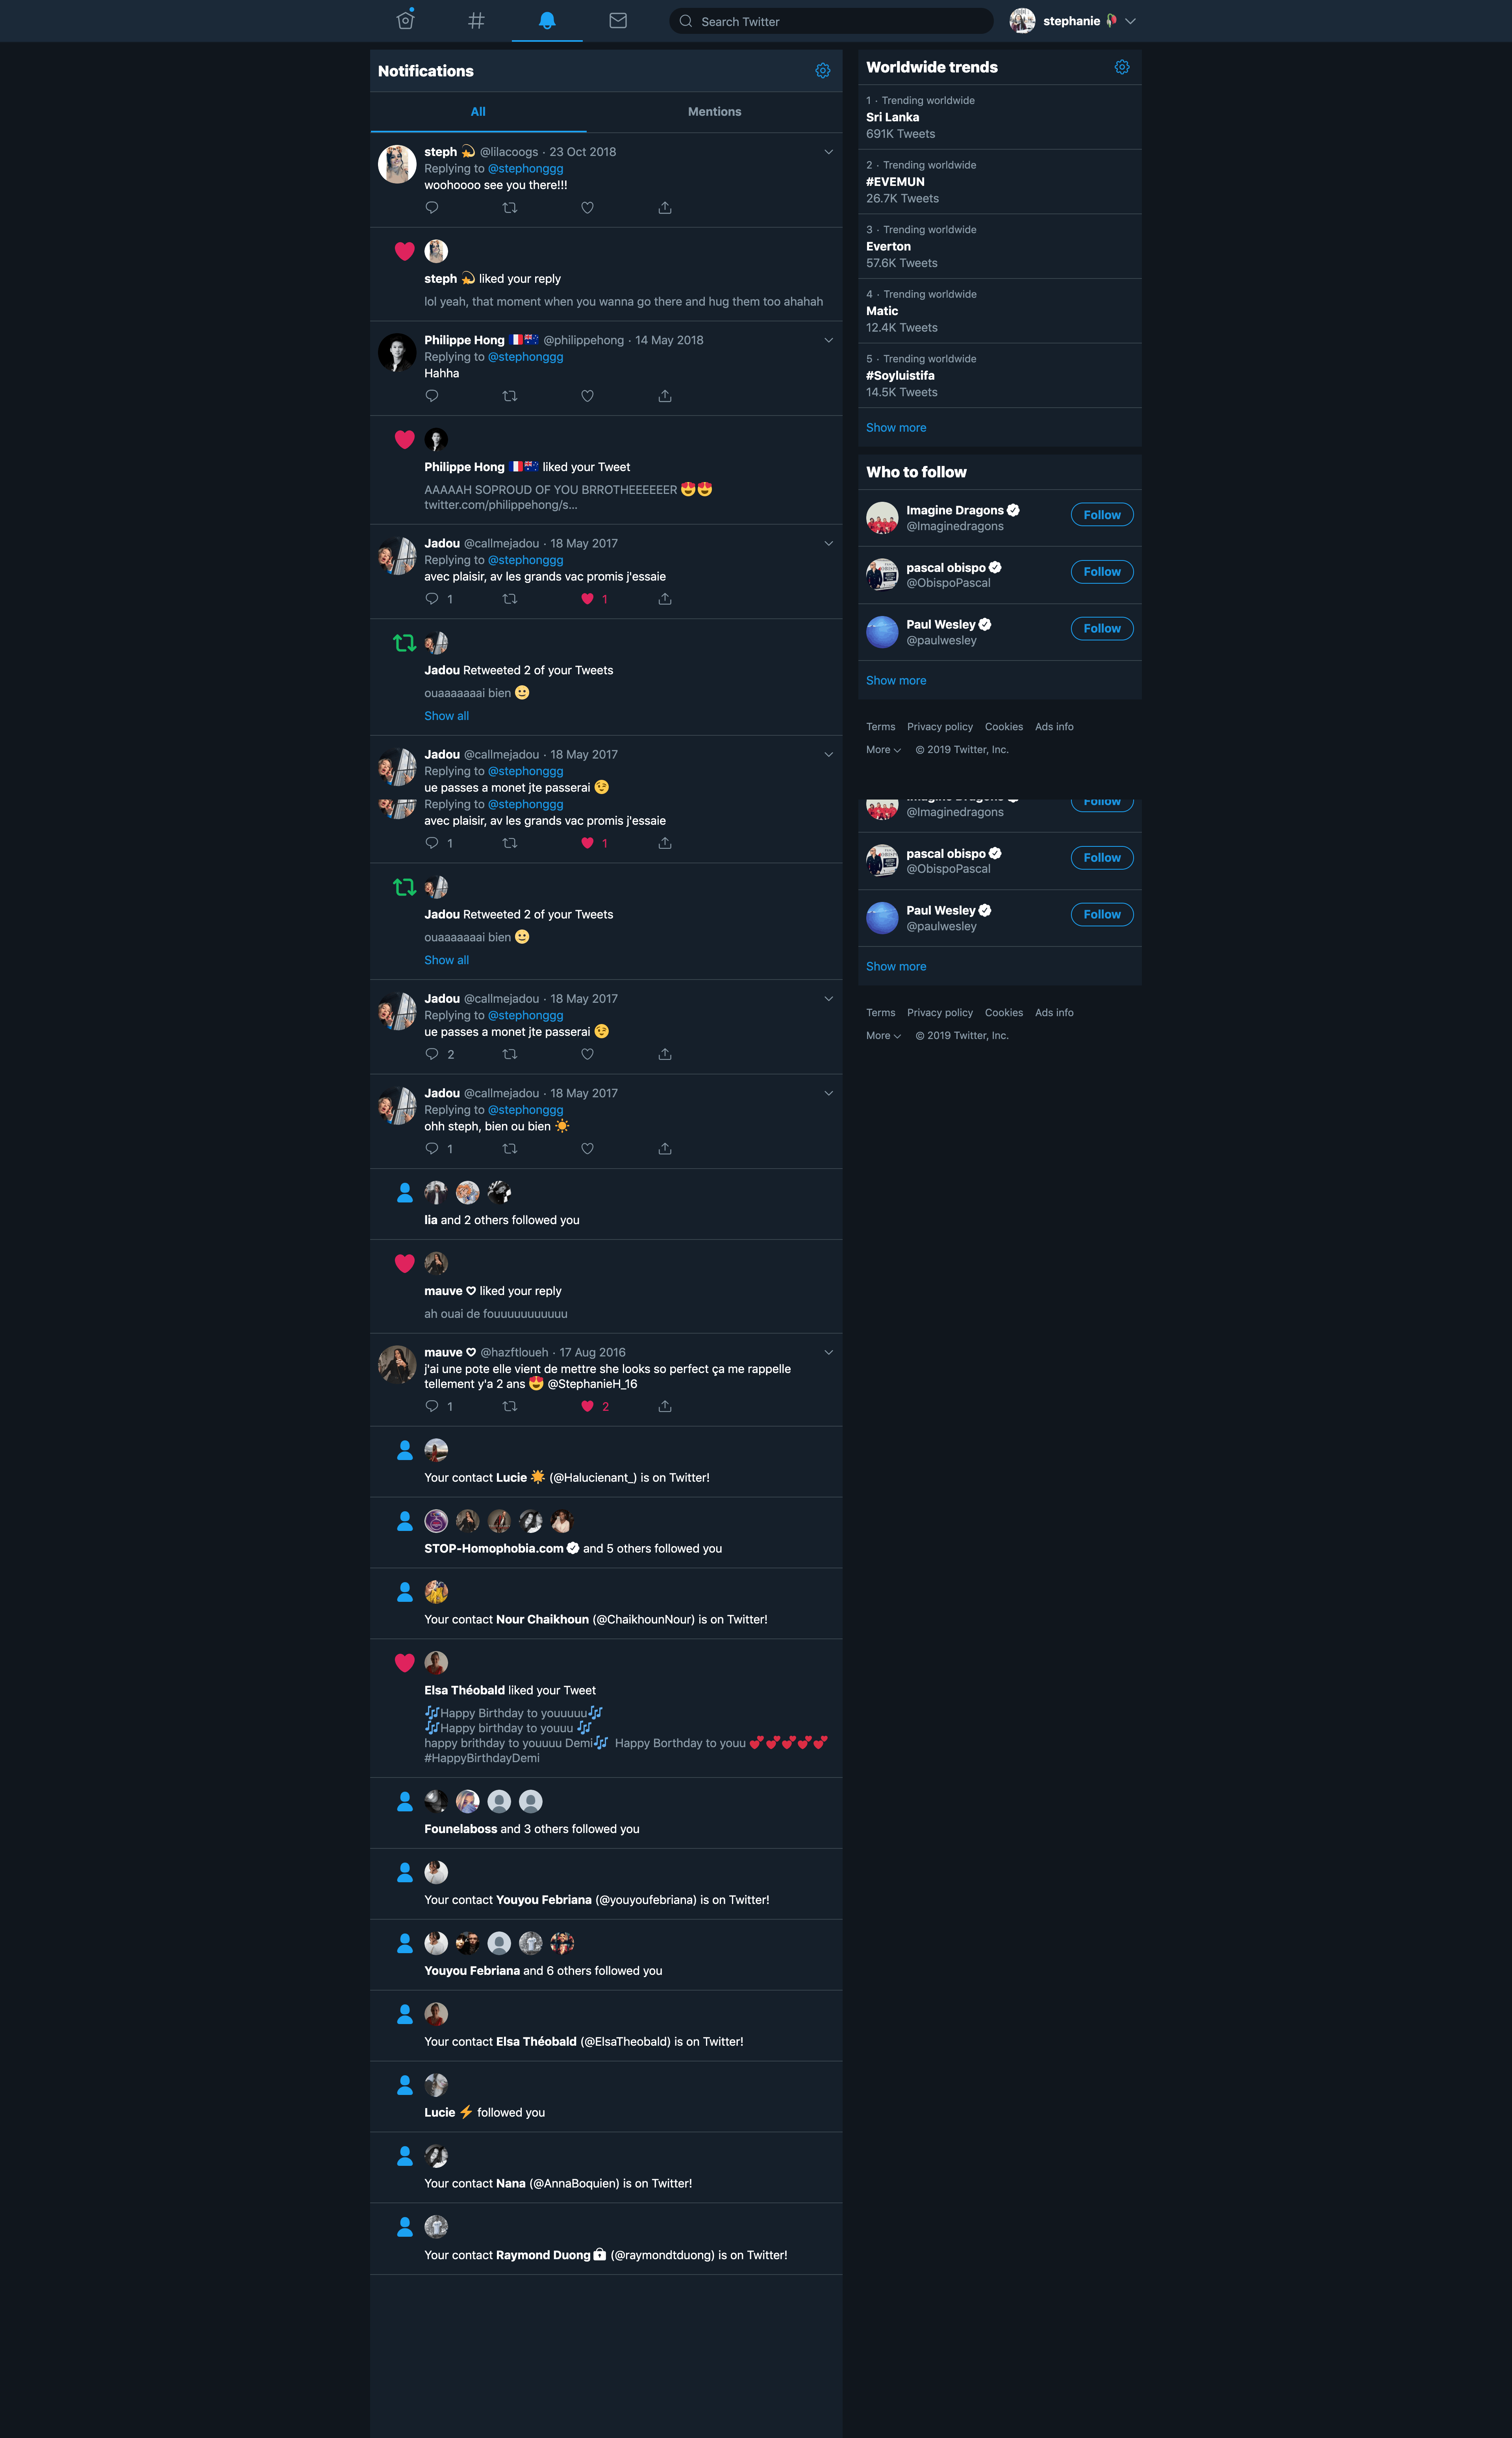 Notifications/Dark Mode by Twitter